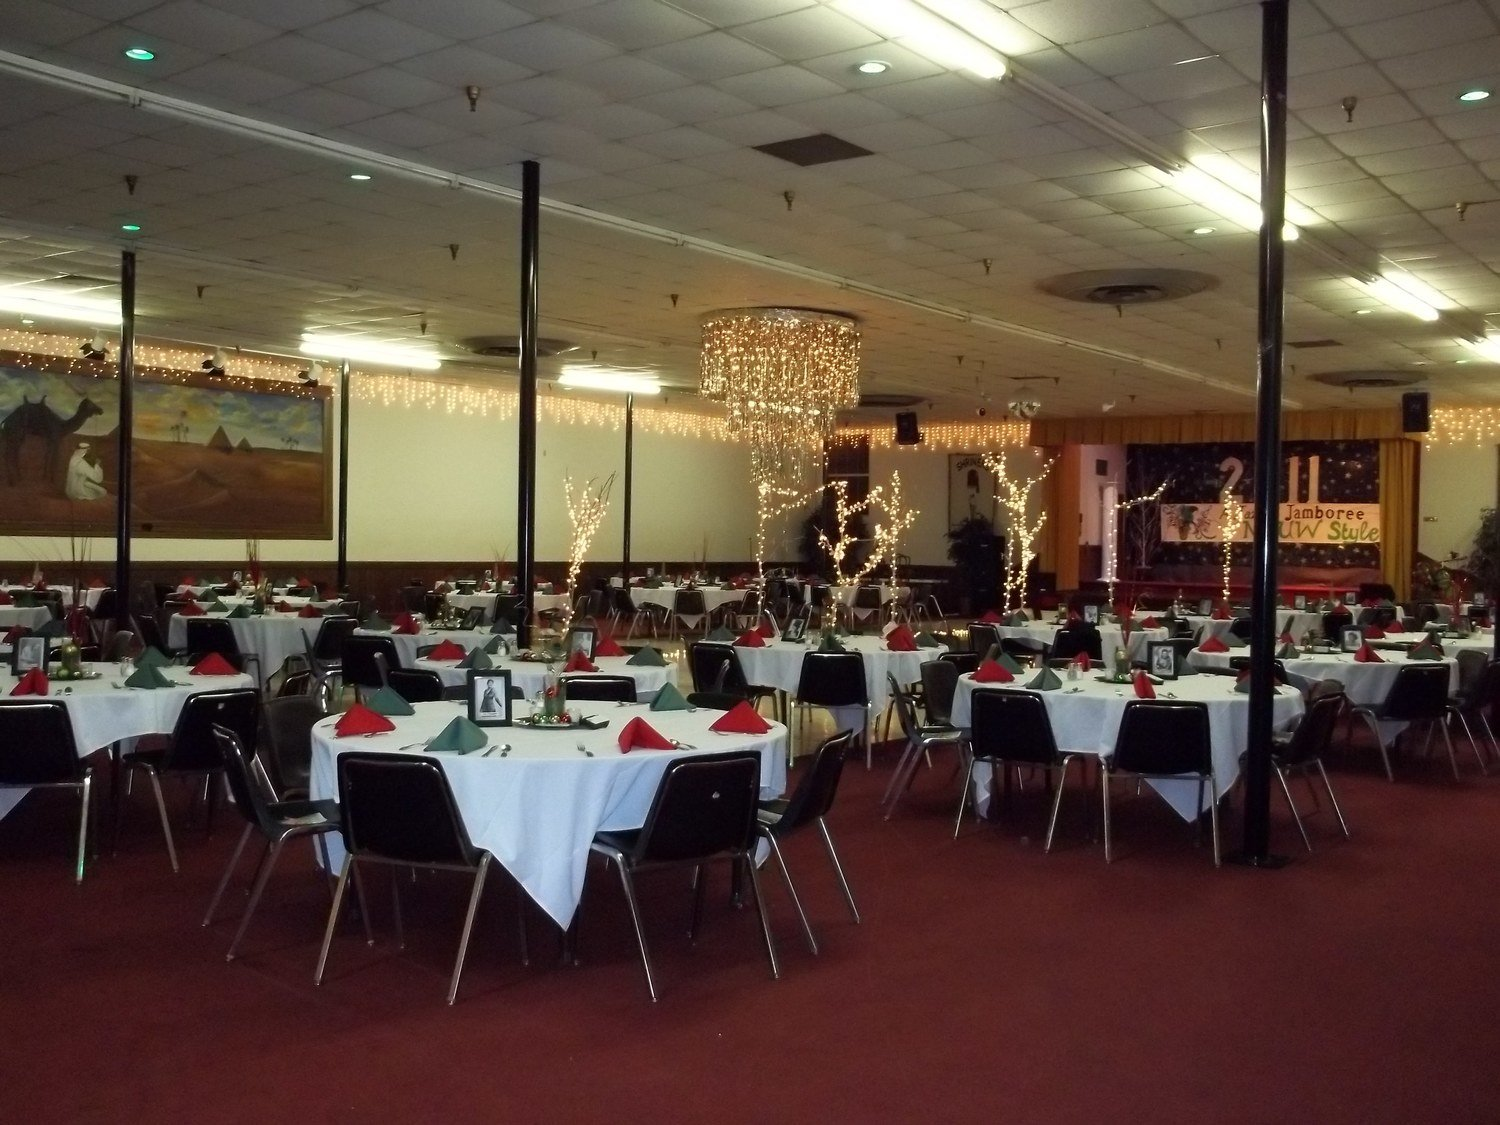 Ballroom Rental Deposit $600.00 (contract must be signed before rental)